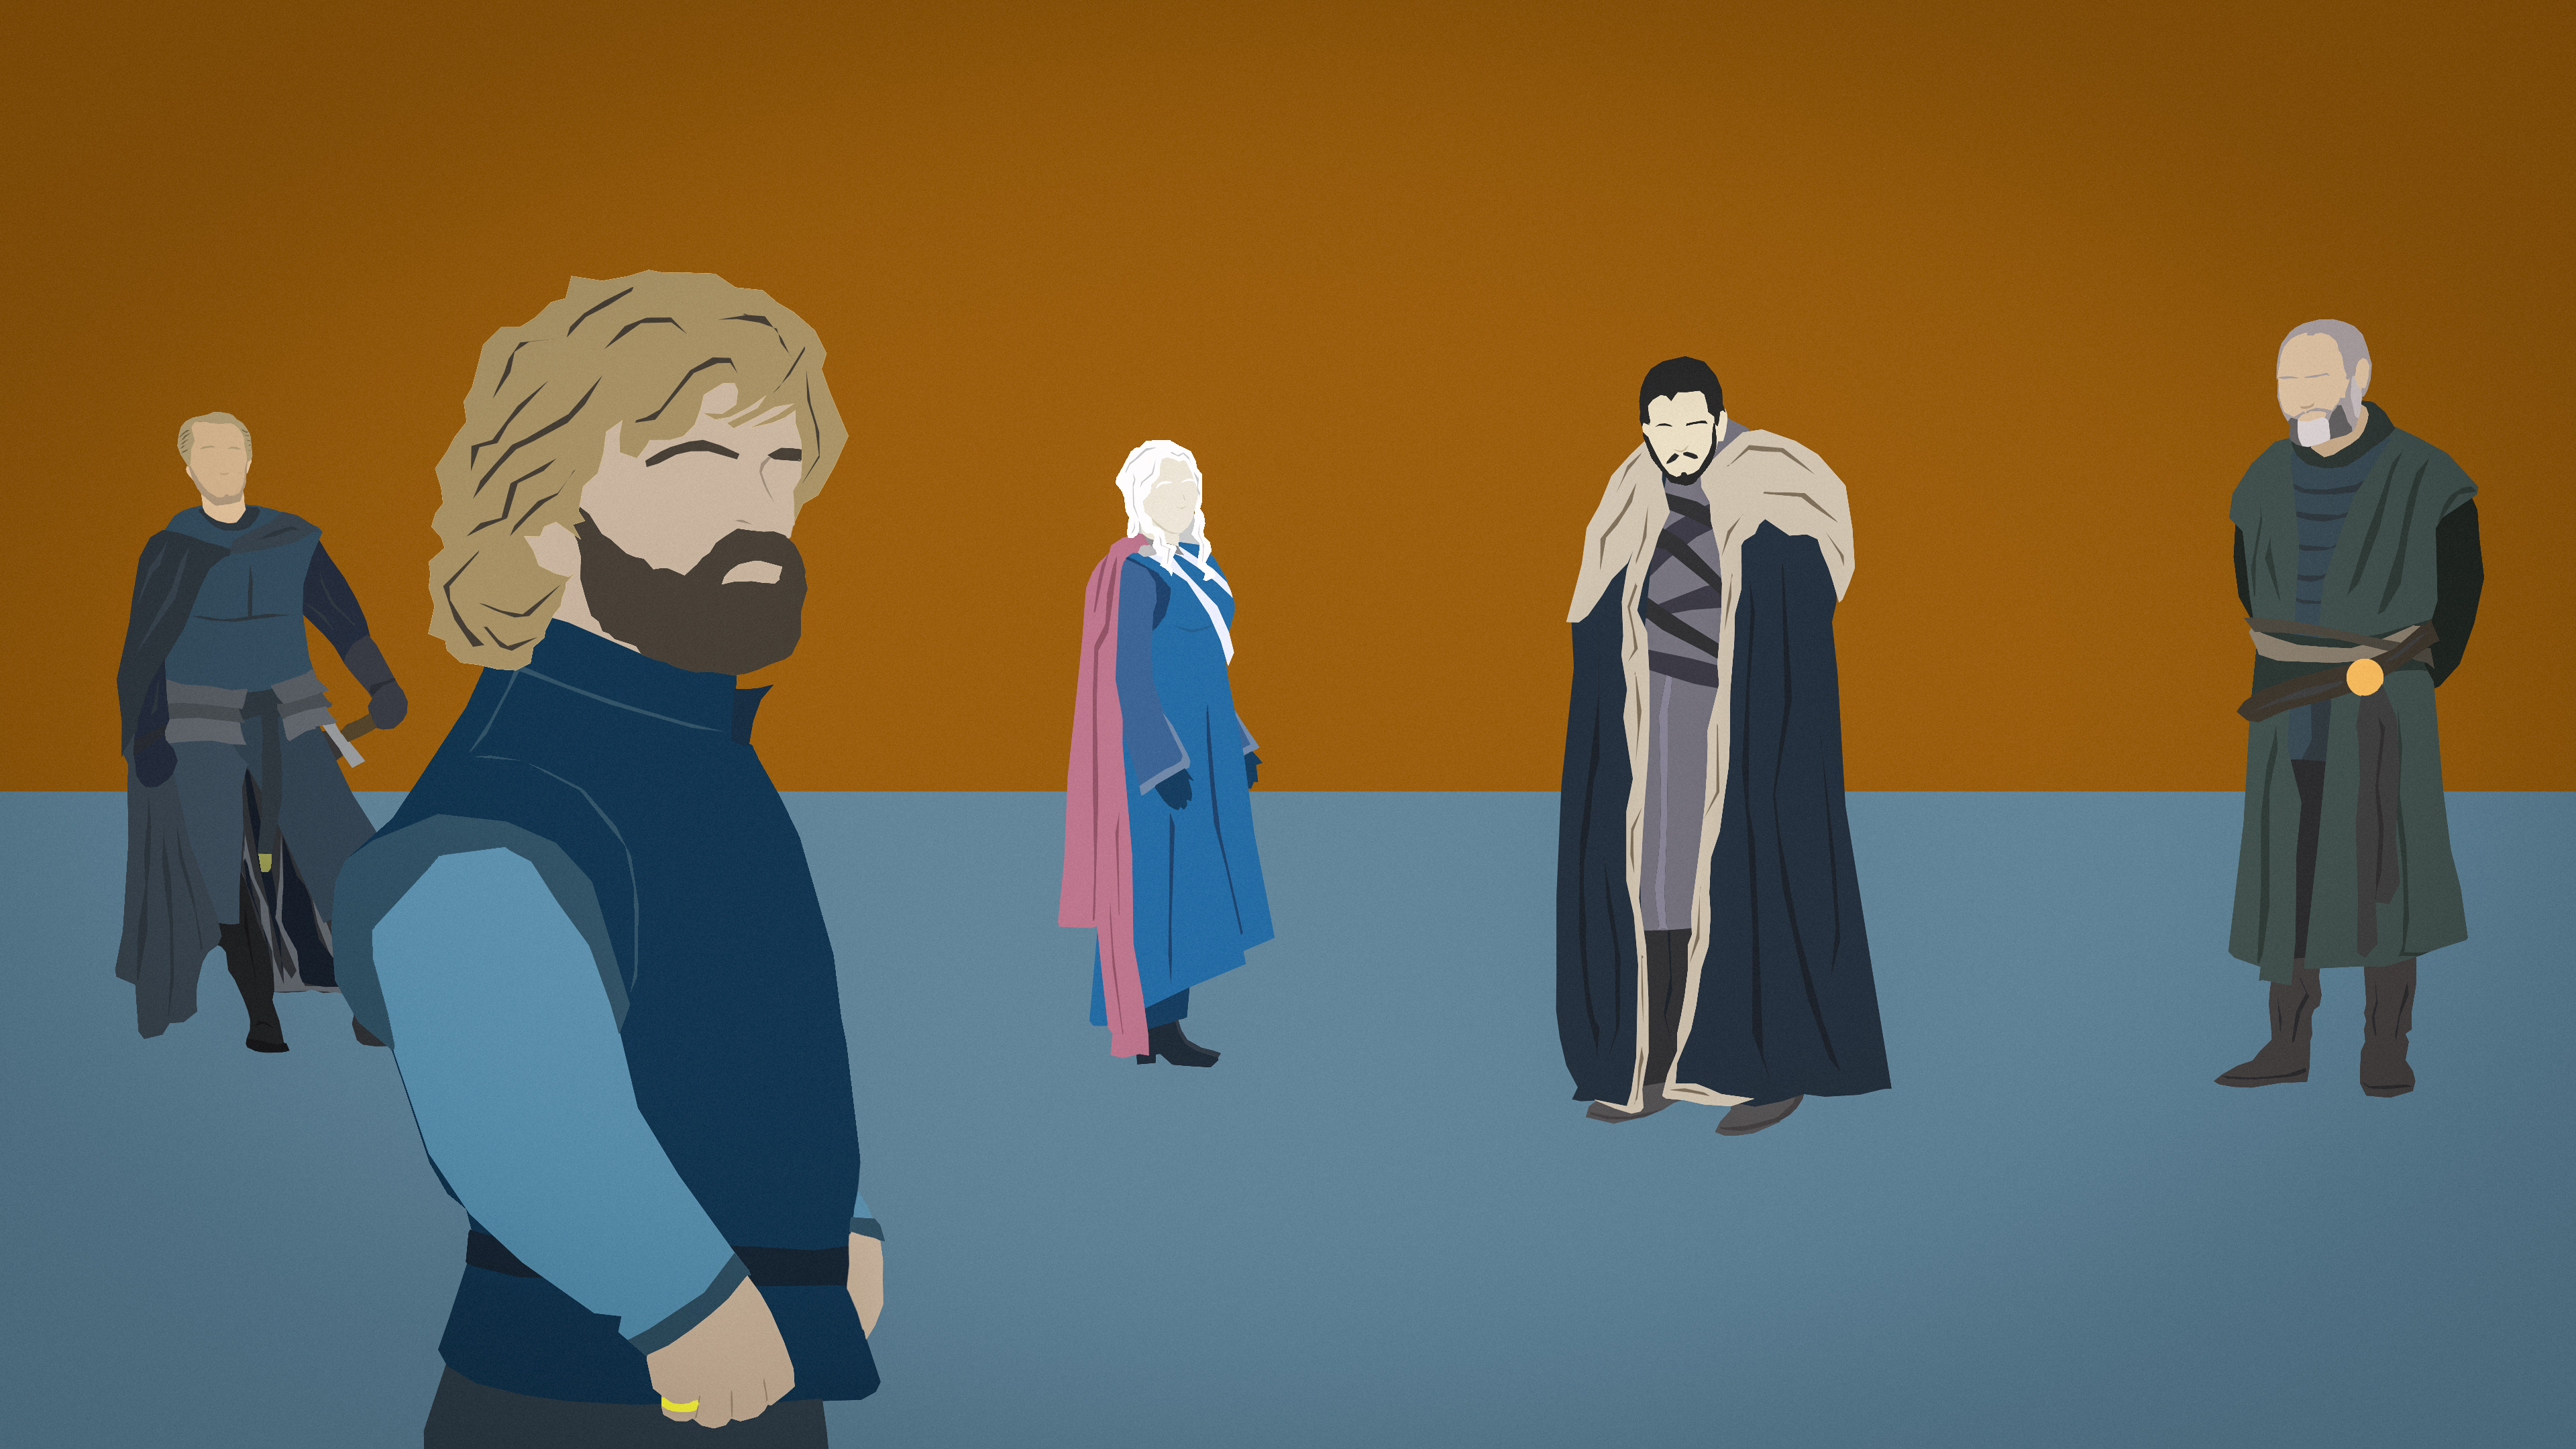 960x544 Game Of Thrones 7 Finale Minimal 960x544 Resolution